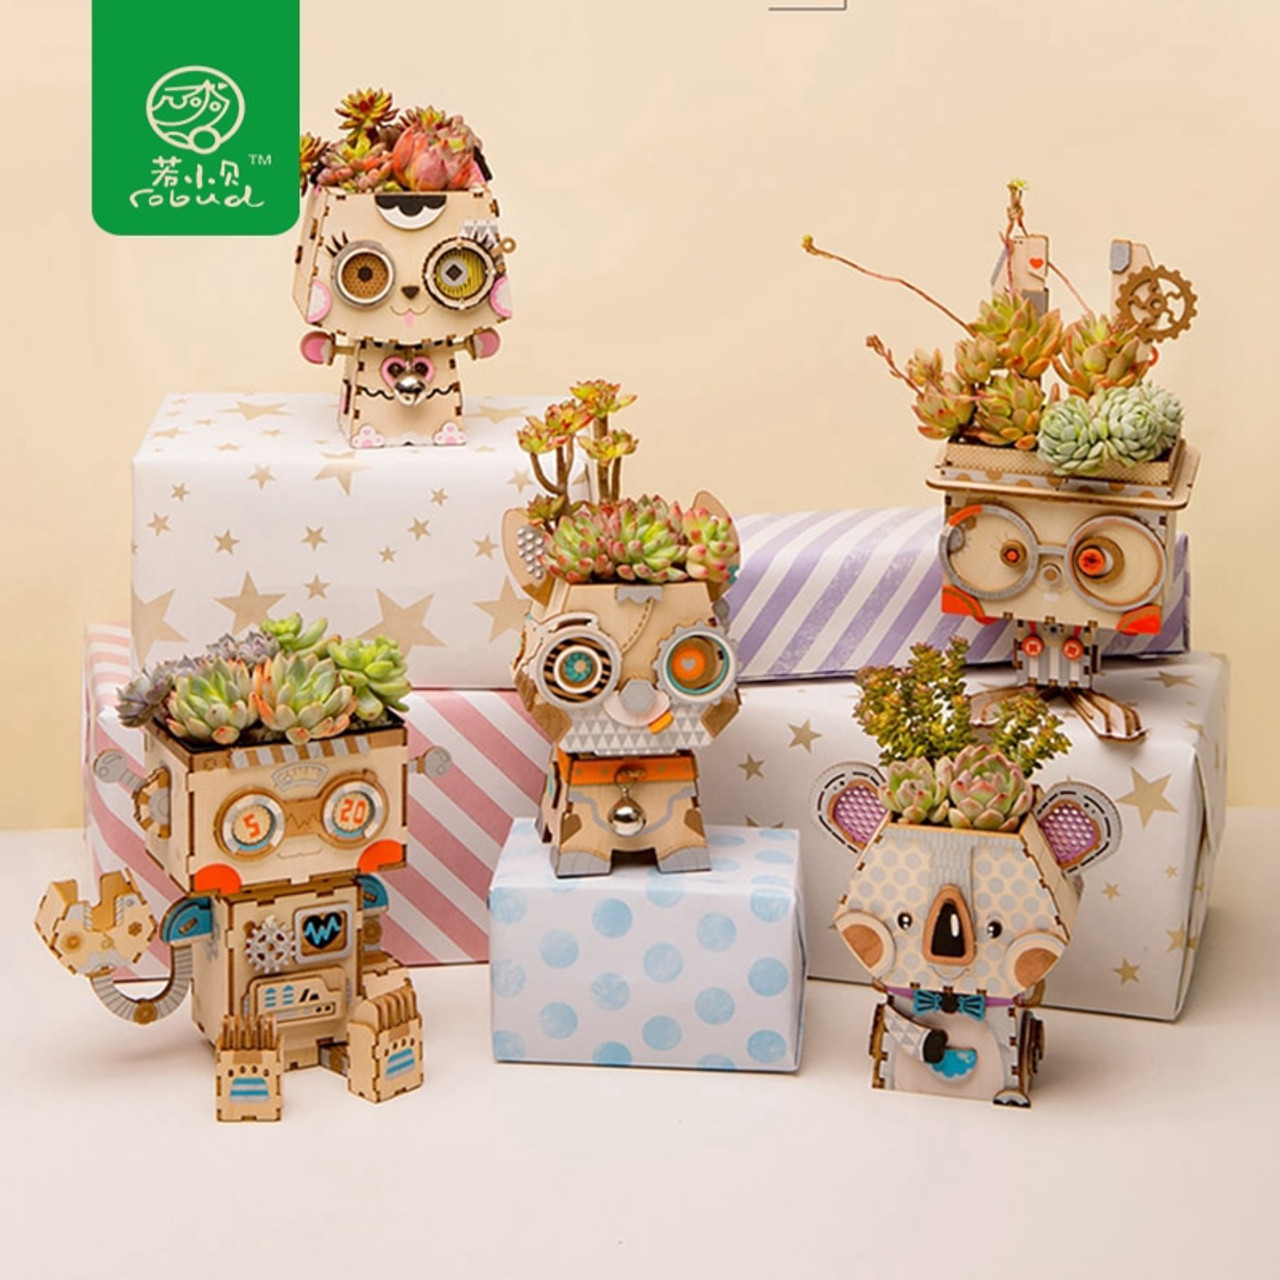 Robud 5 Types Cute Animal Robot Flower Pot Children Adult Creative 3d Wooden Puzzle Game Models Building Kits Toy Ft